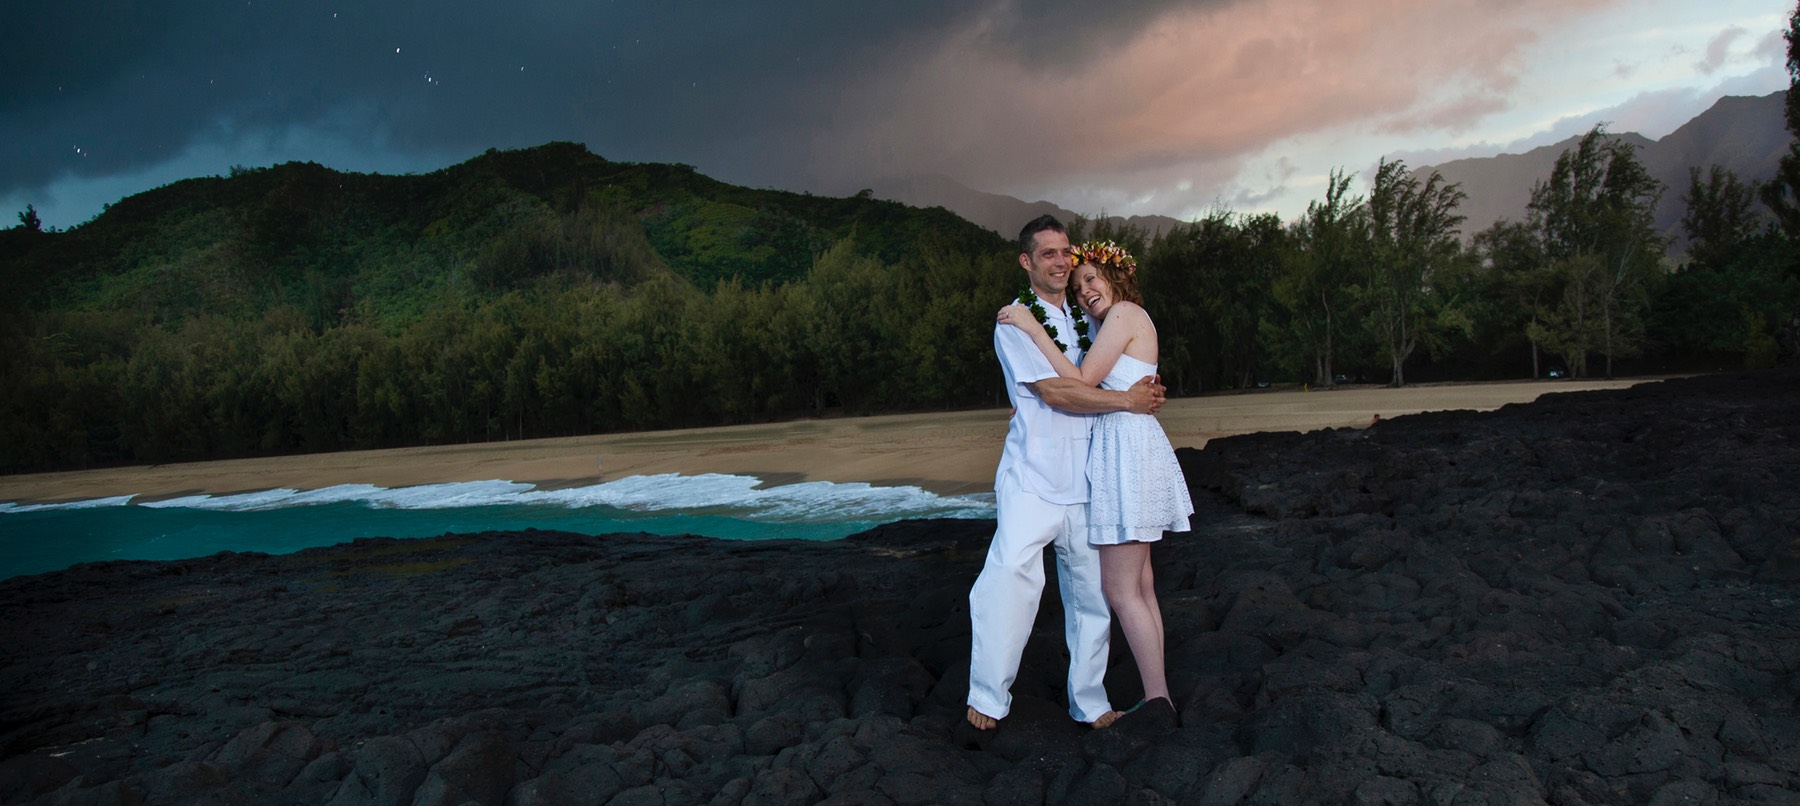 wedding videography Kauai wedding videography by Difraser sunset shoot at Lumahai beach